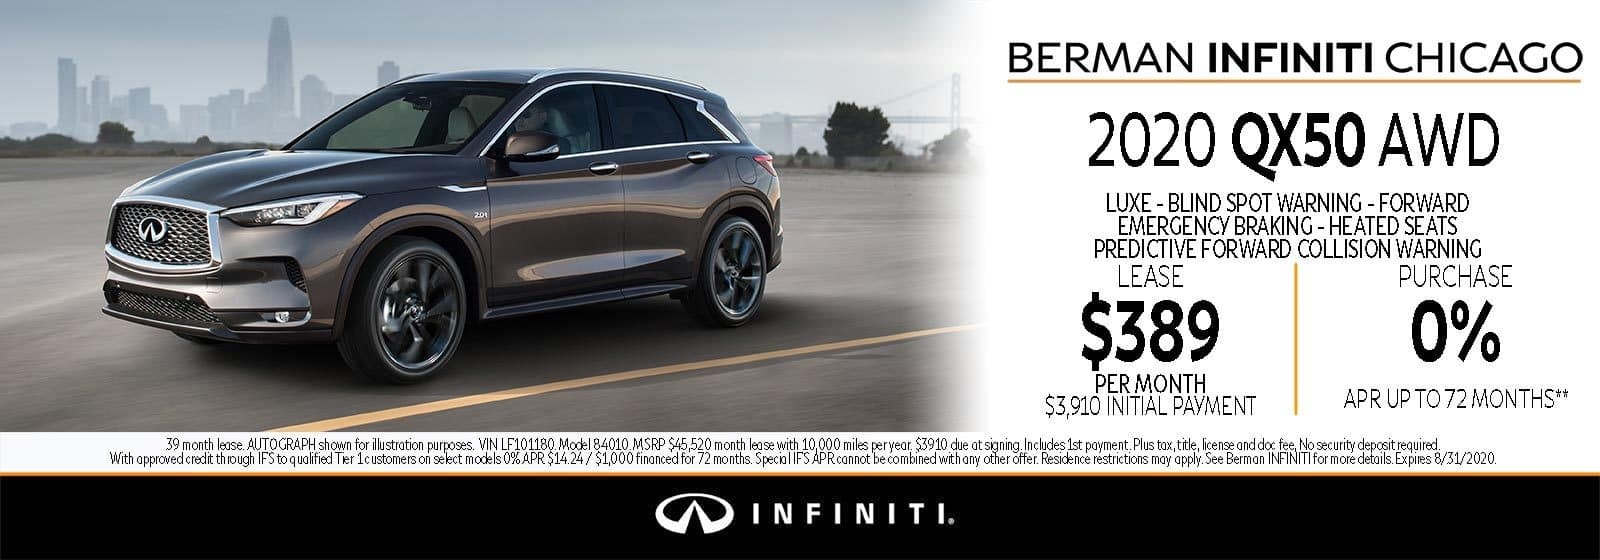 New 2020 INFINITI QX50 August offer at Berman INFINITI Chicago!